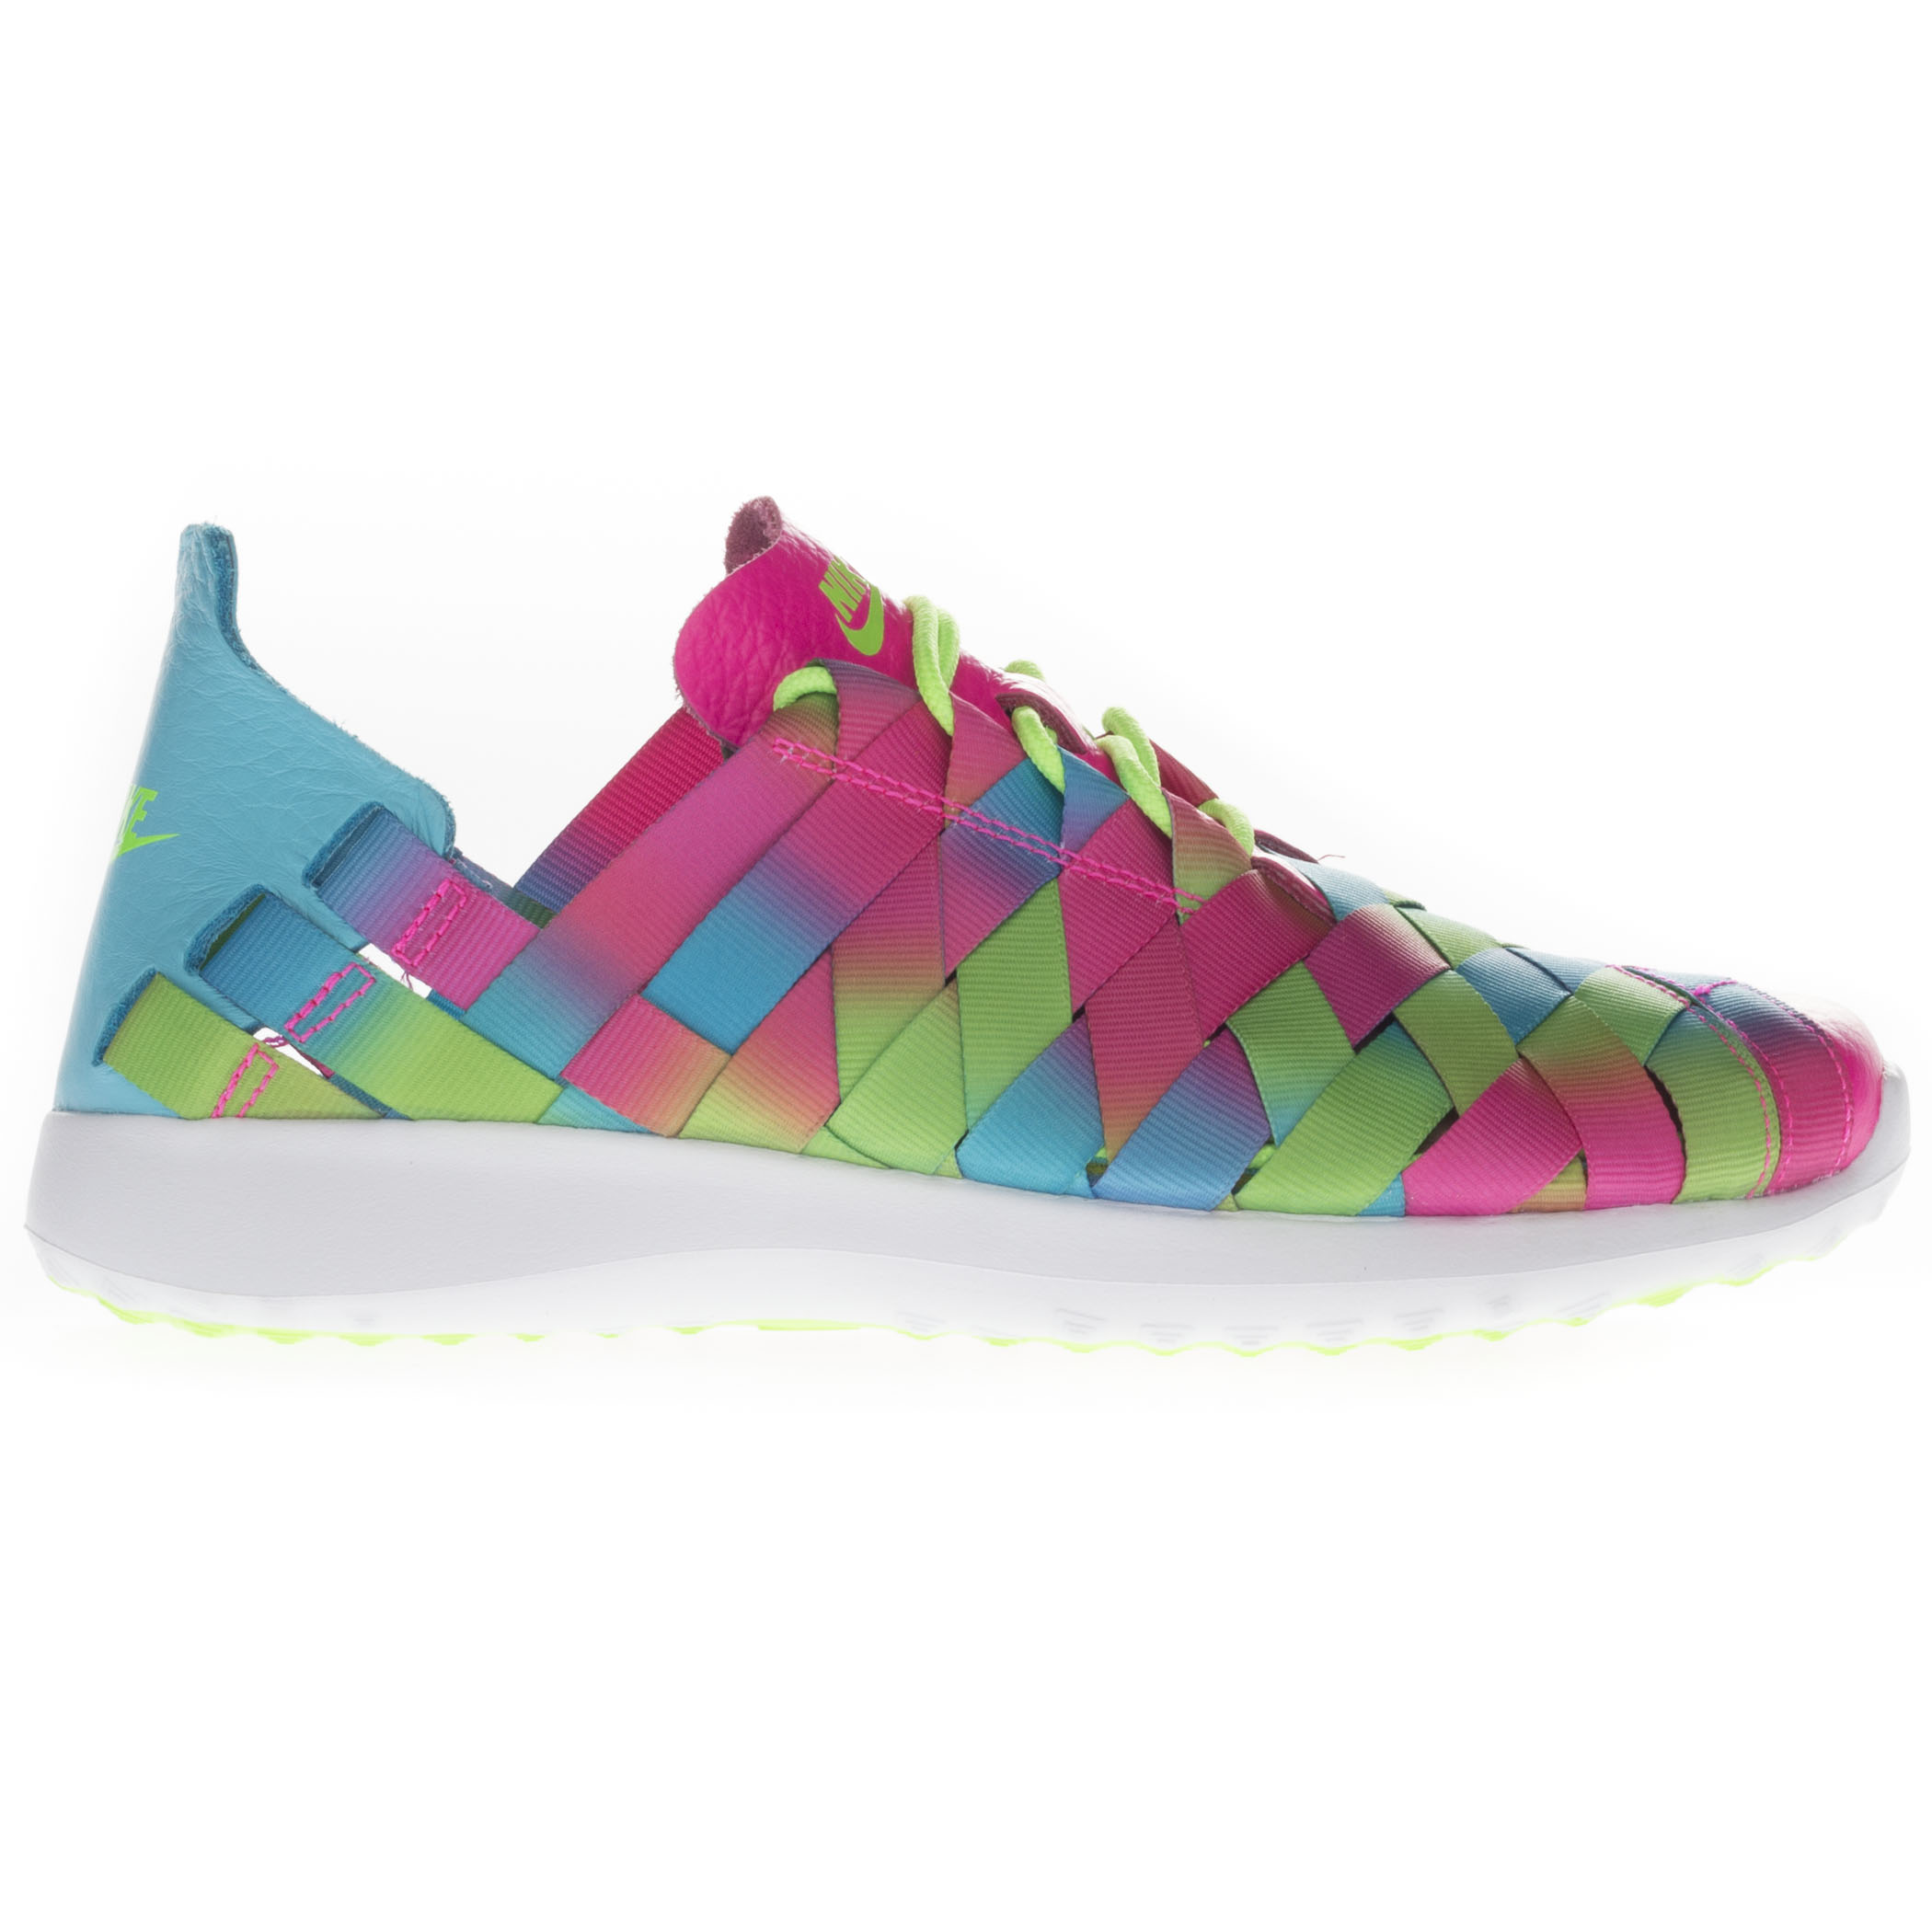 Nike Women's Junvenate Woven Prm Low Top Running Sports Blue Green Pink Trainers